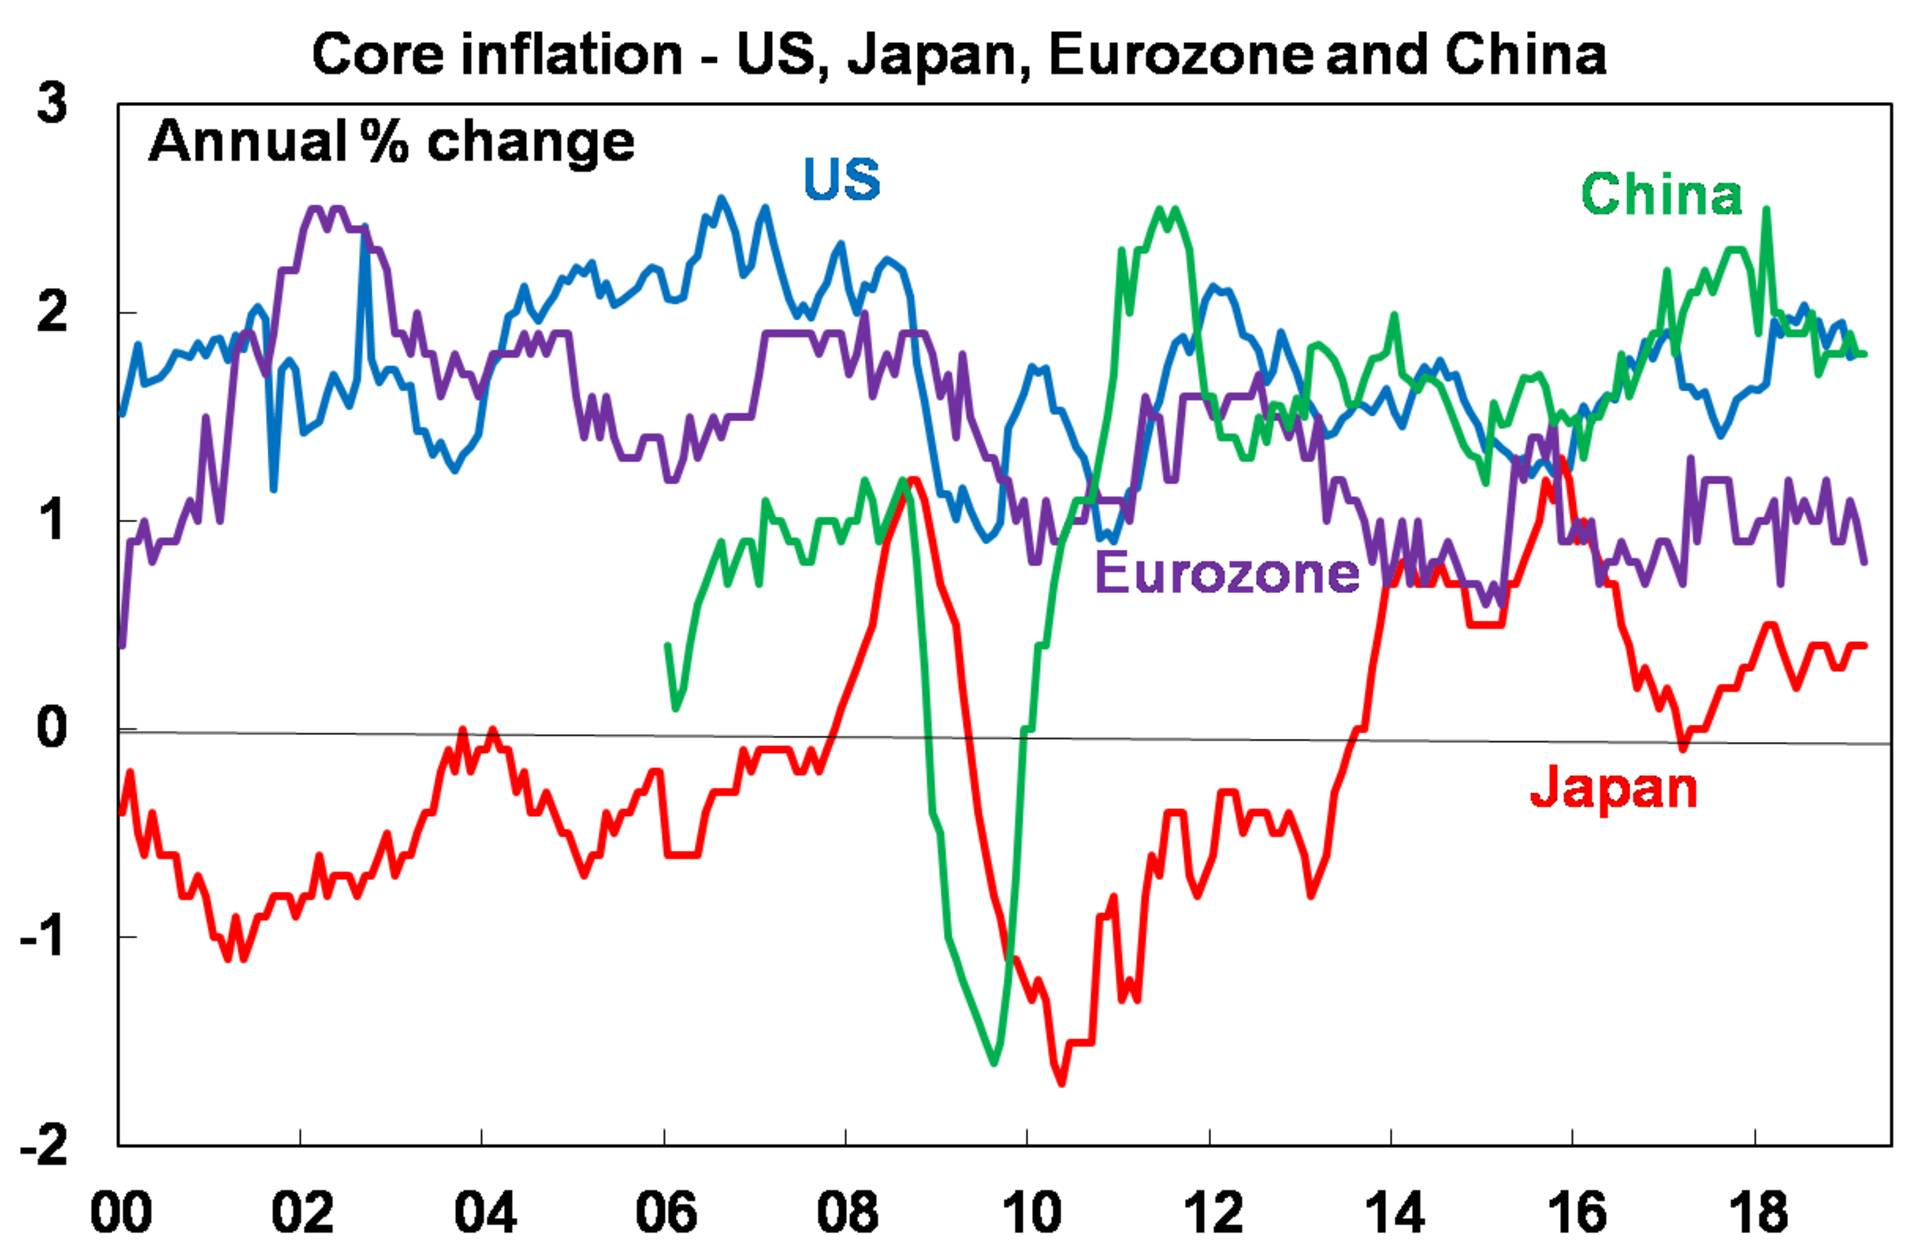 Core inflation - US, Japan, Eurozone and China